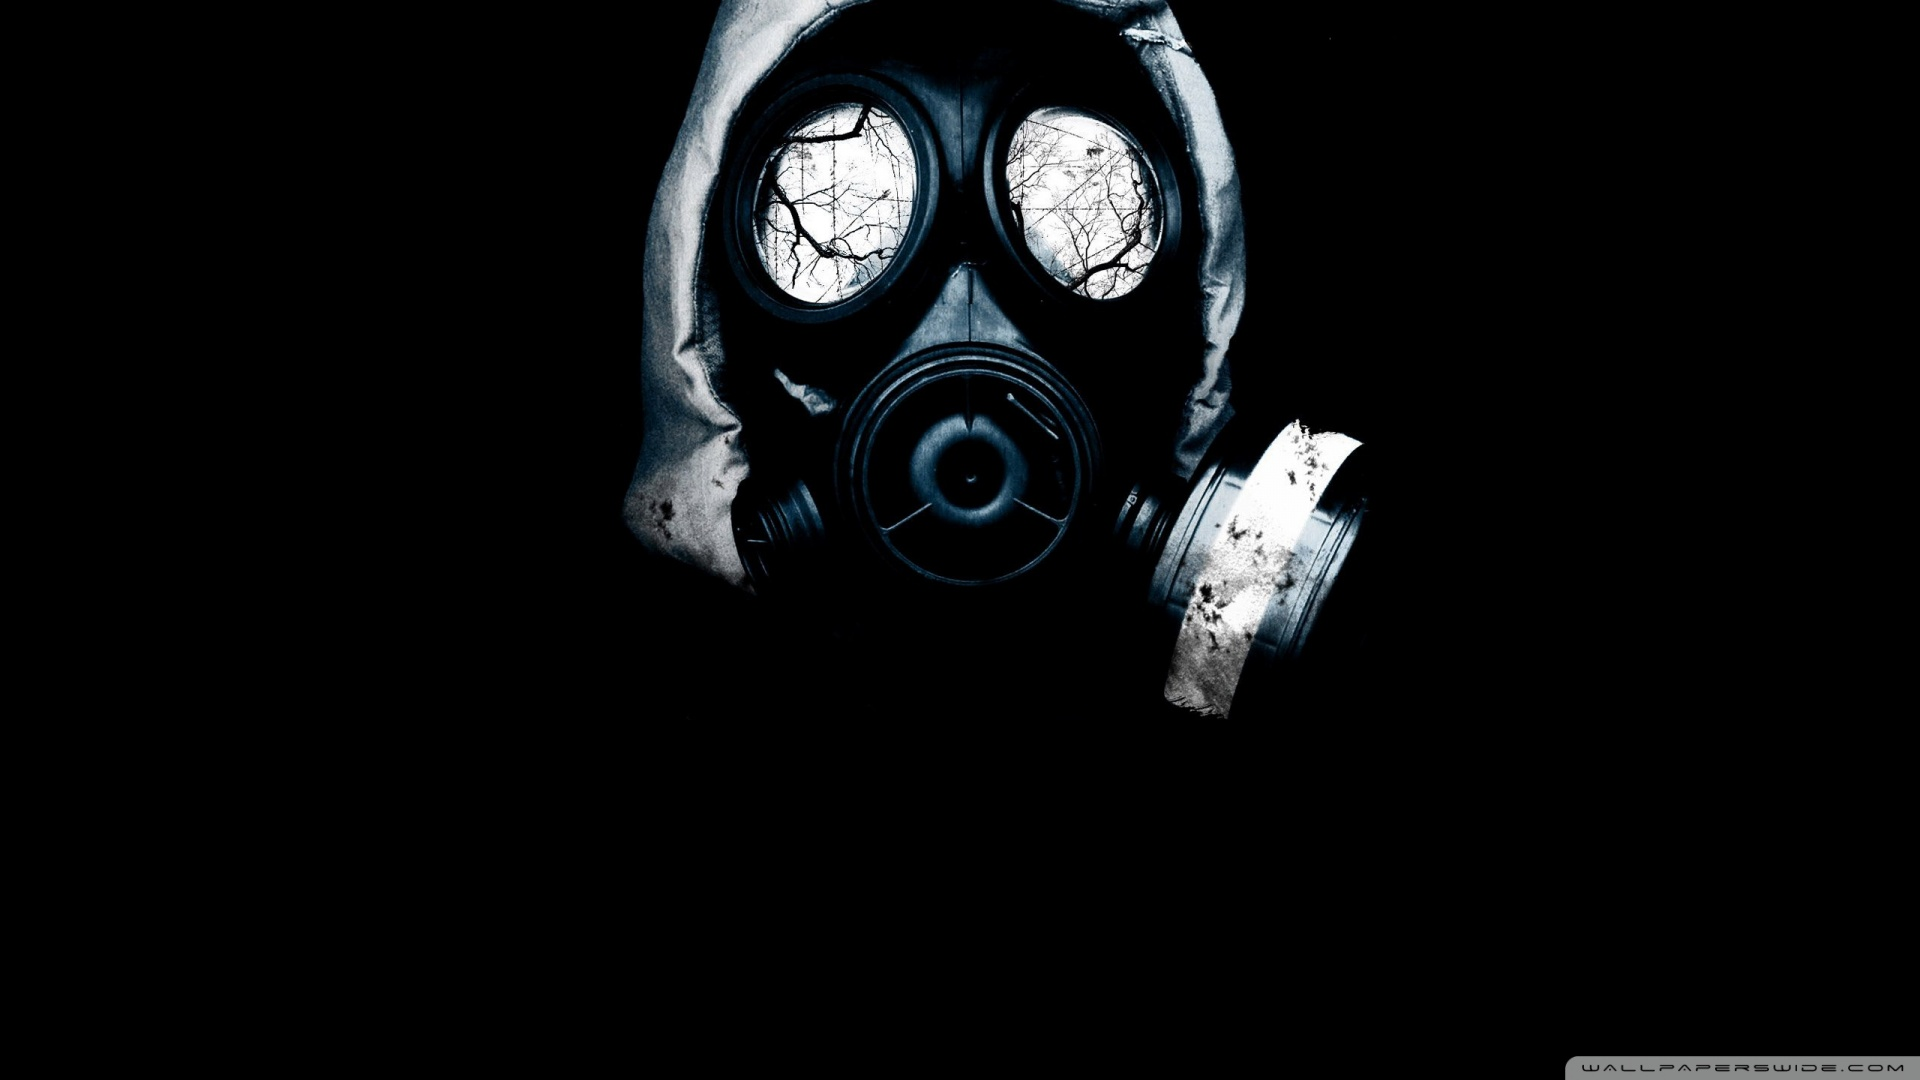 Pubg Gas Mask Guy Hd Games 4k Wallpapers Images: Anonymous Mask Wallpaper